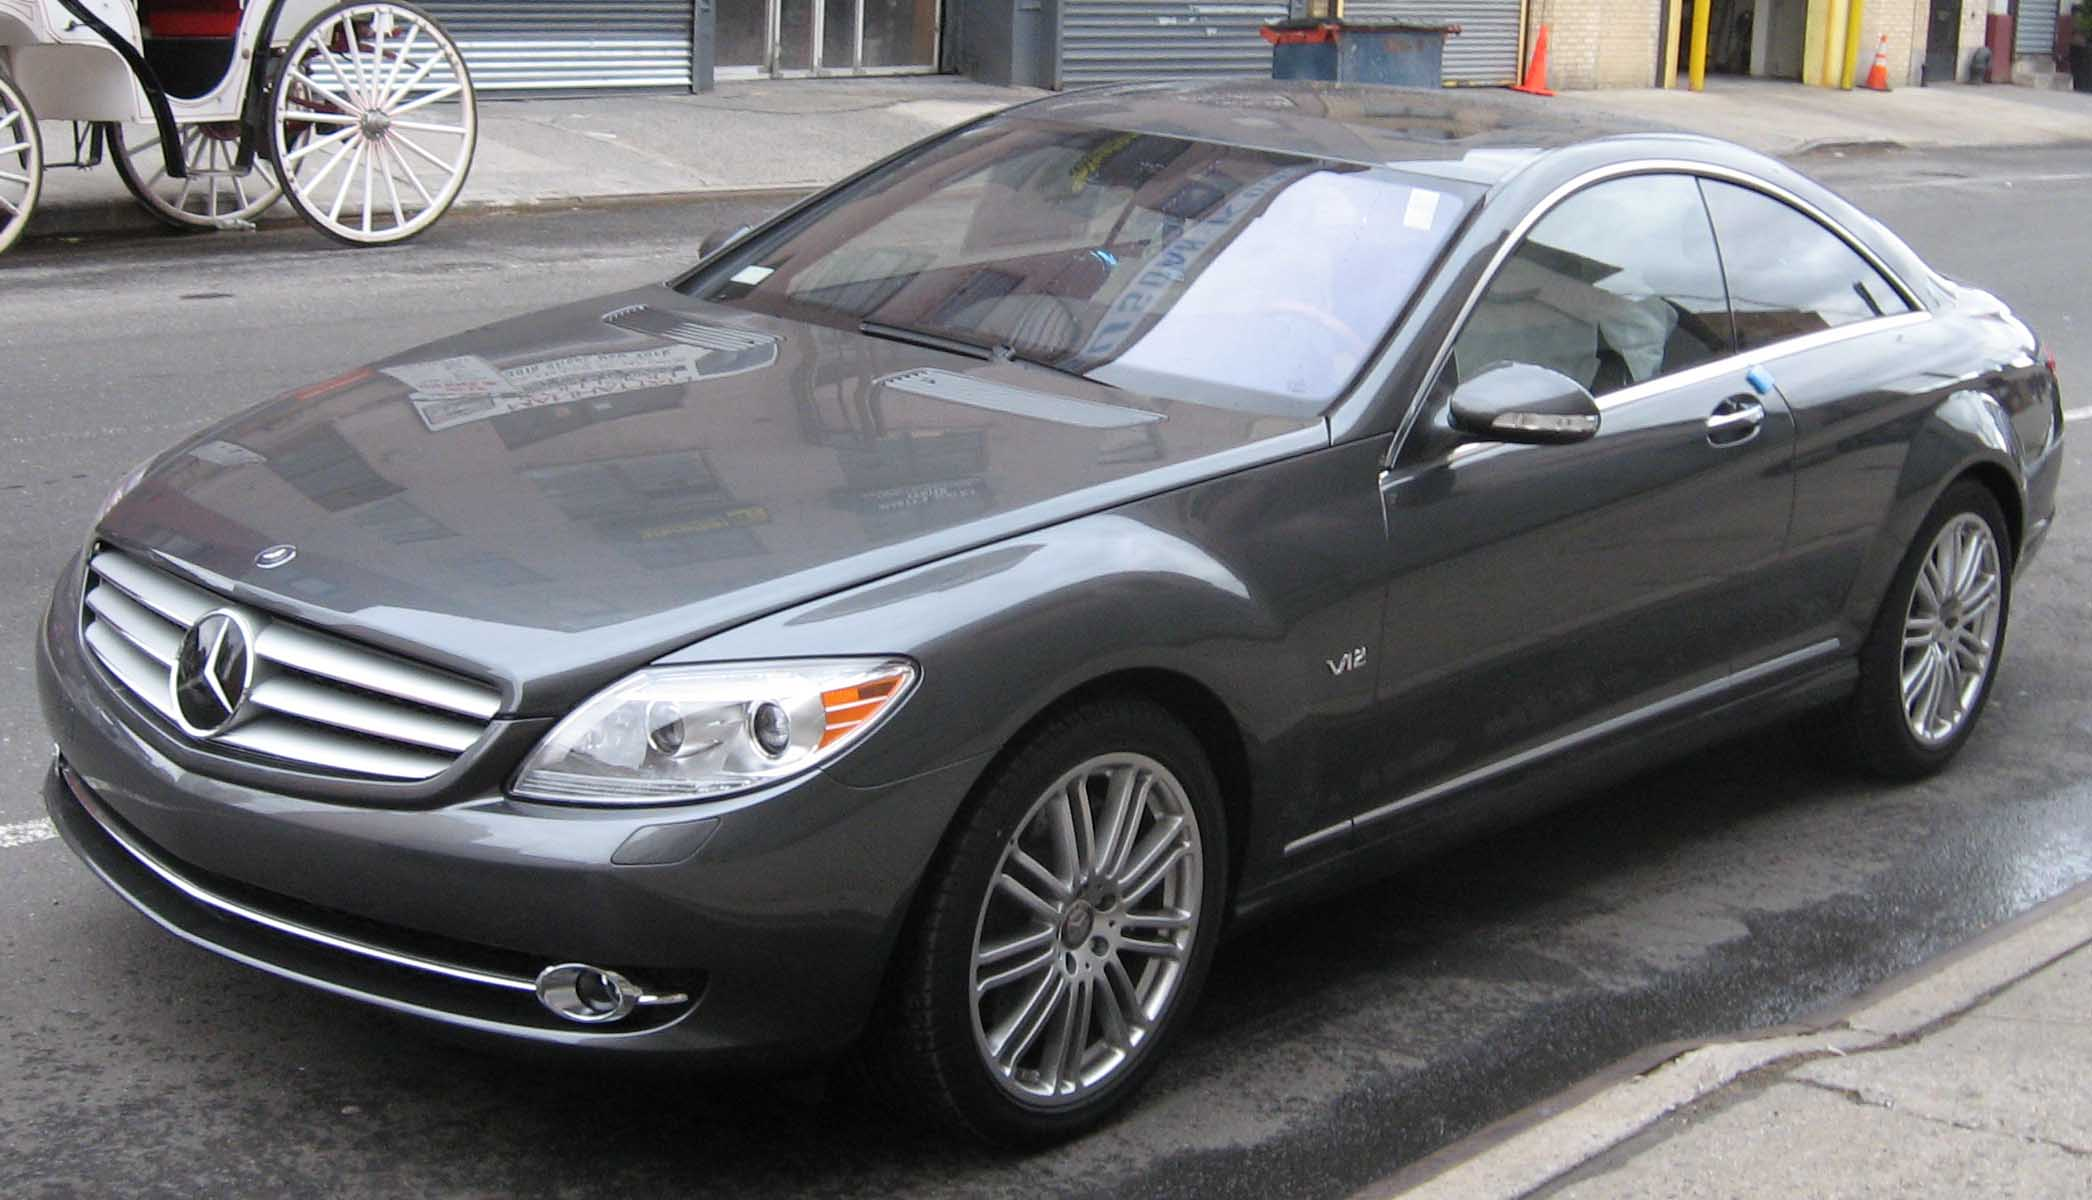 mercedes benz cl600 reviews mercedes benz cl600 car reviews